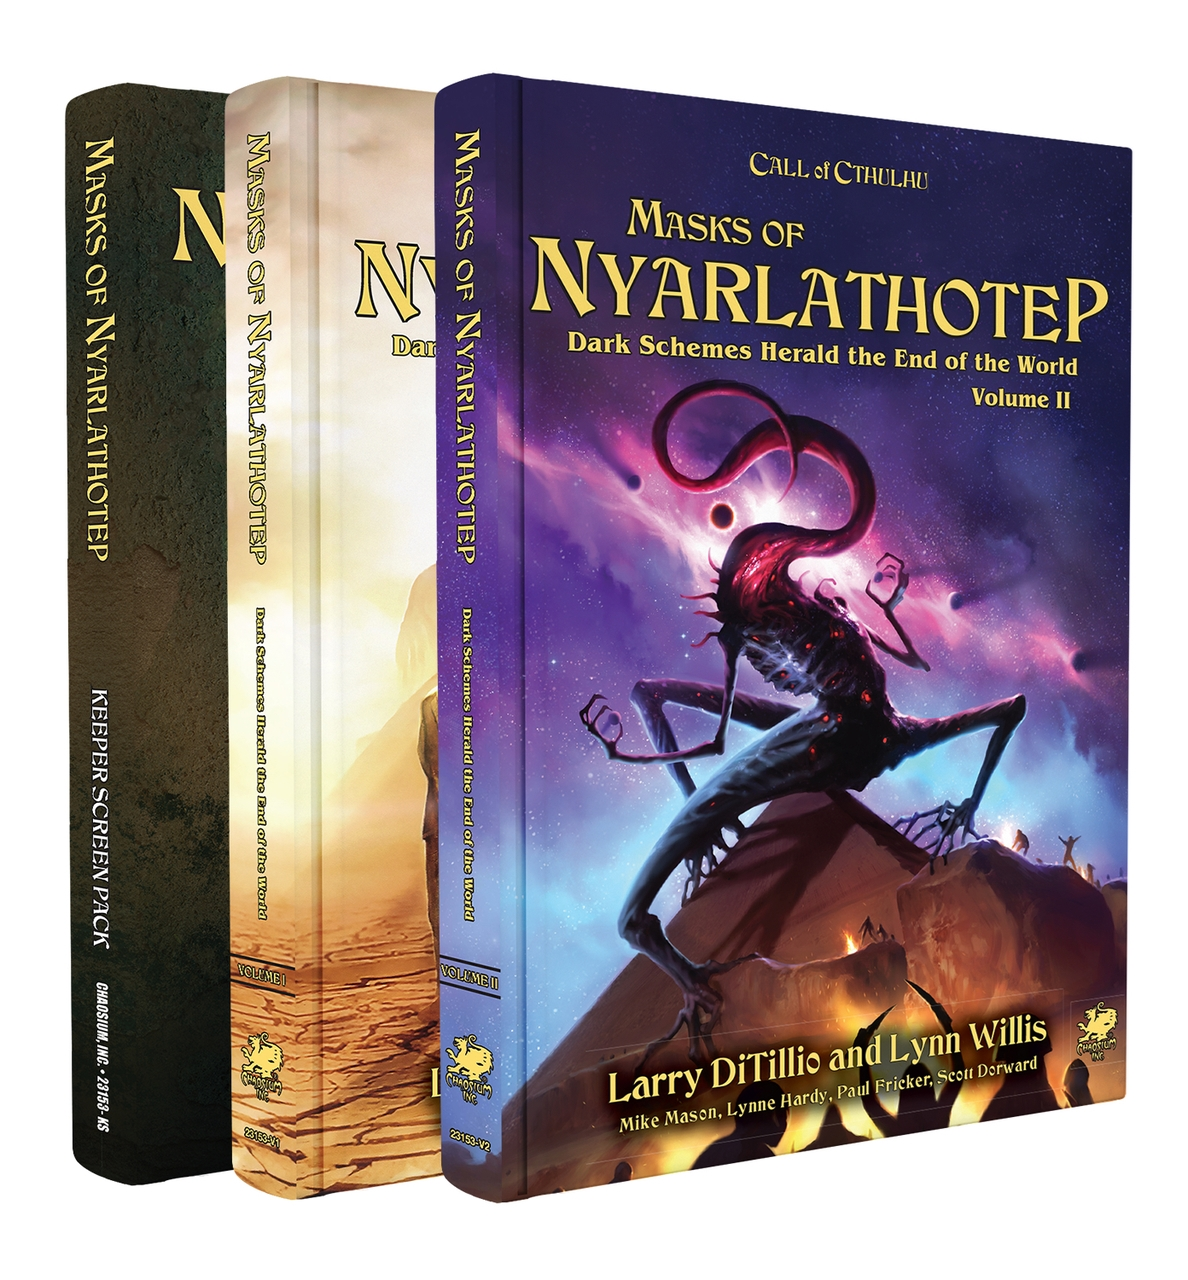 Call of Cthulhu (7th Edition): Masks of Nyarlathotep Slipcase Set [Damaged]